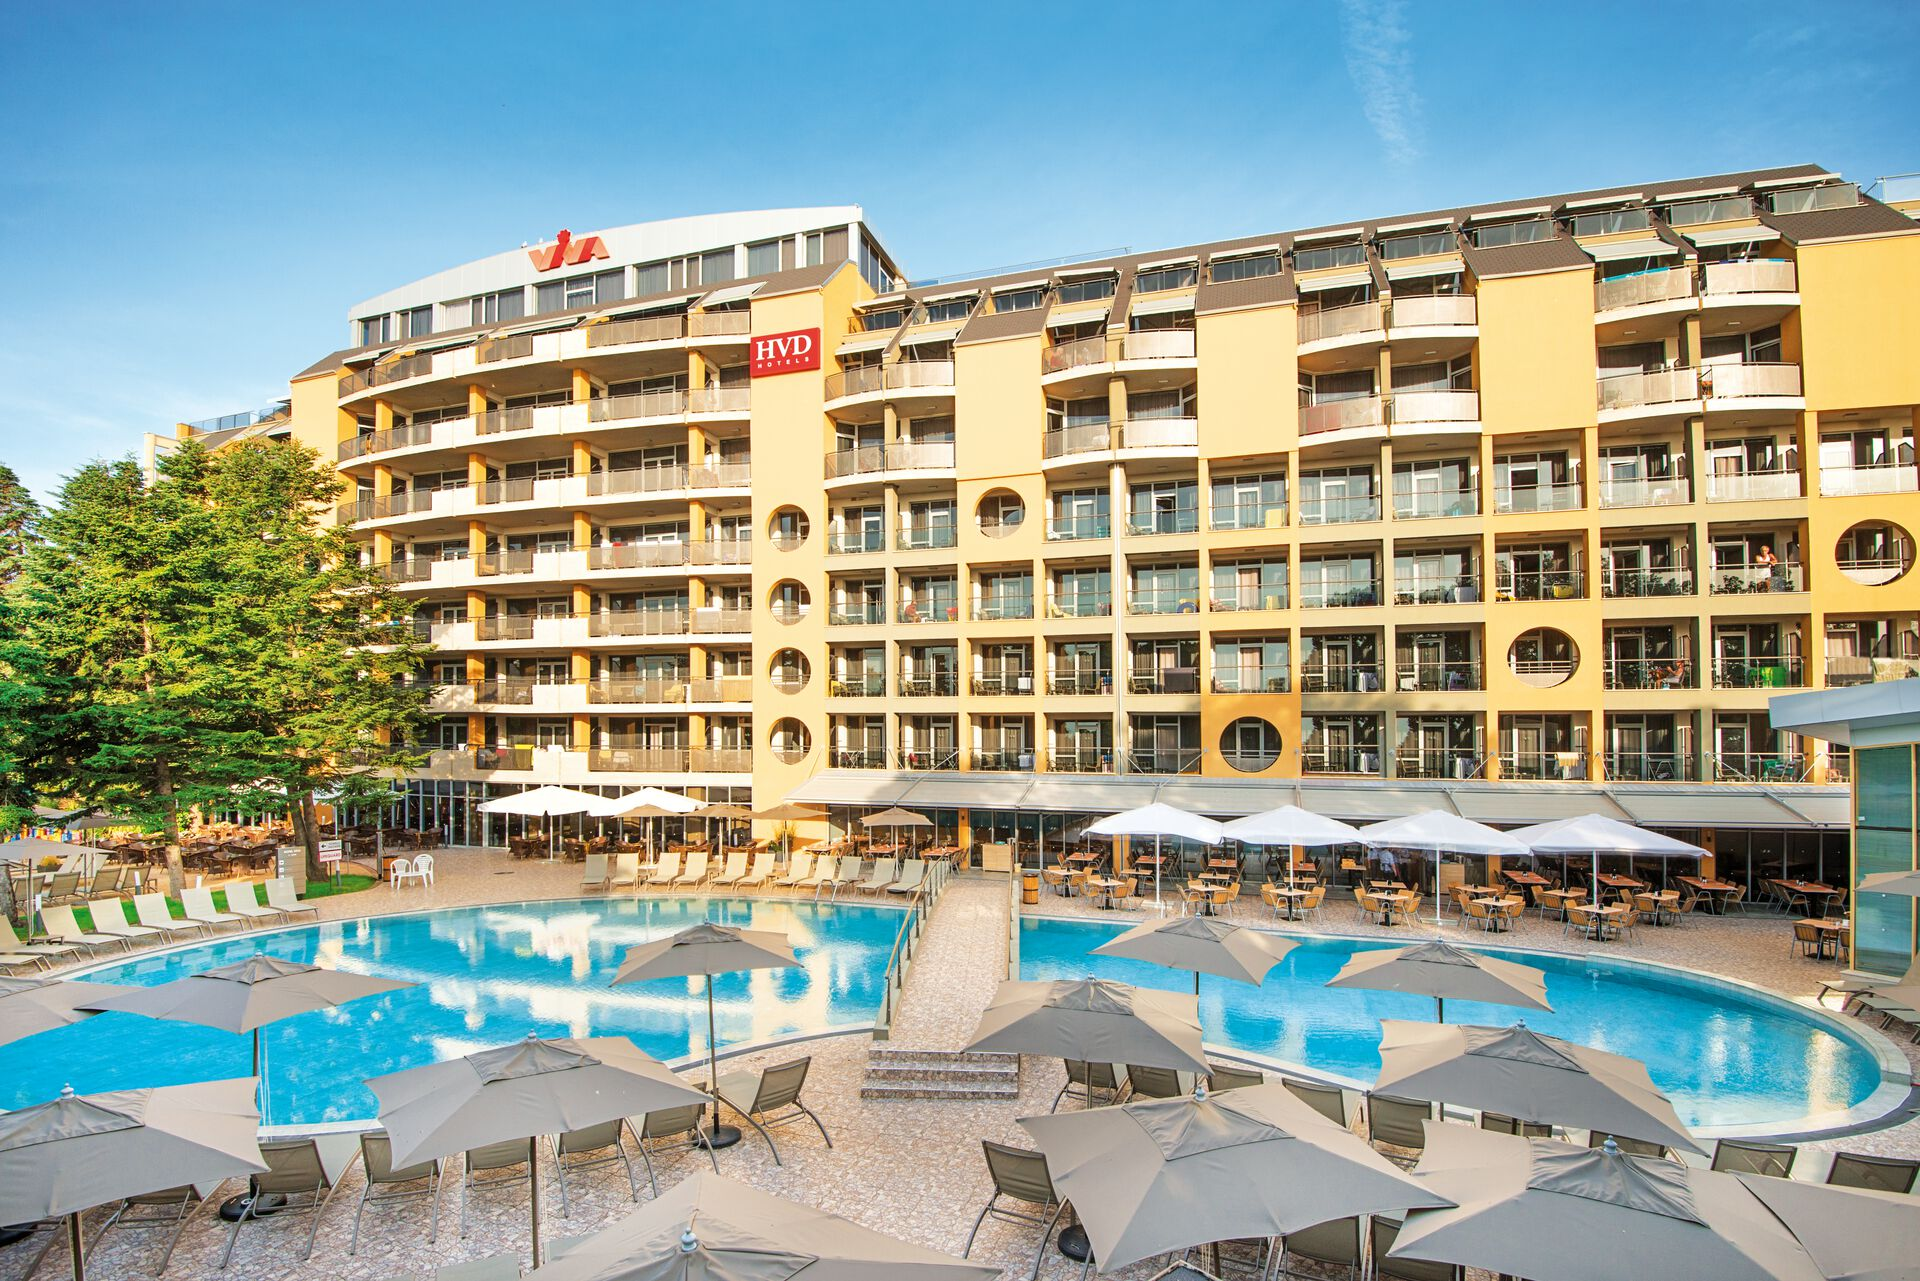 HVD Hotel Viva - chambre double low cost